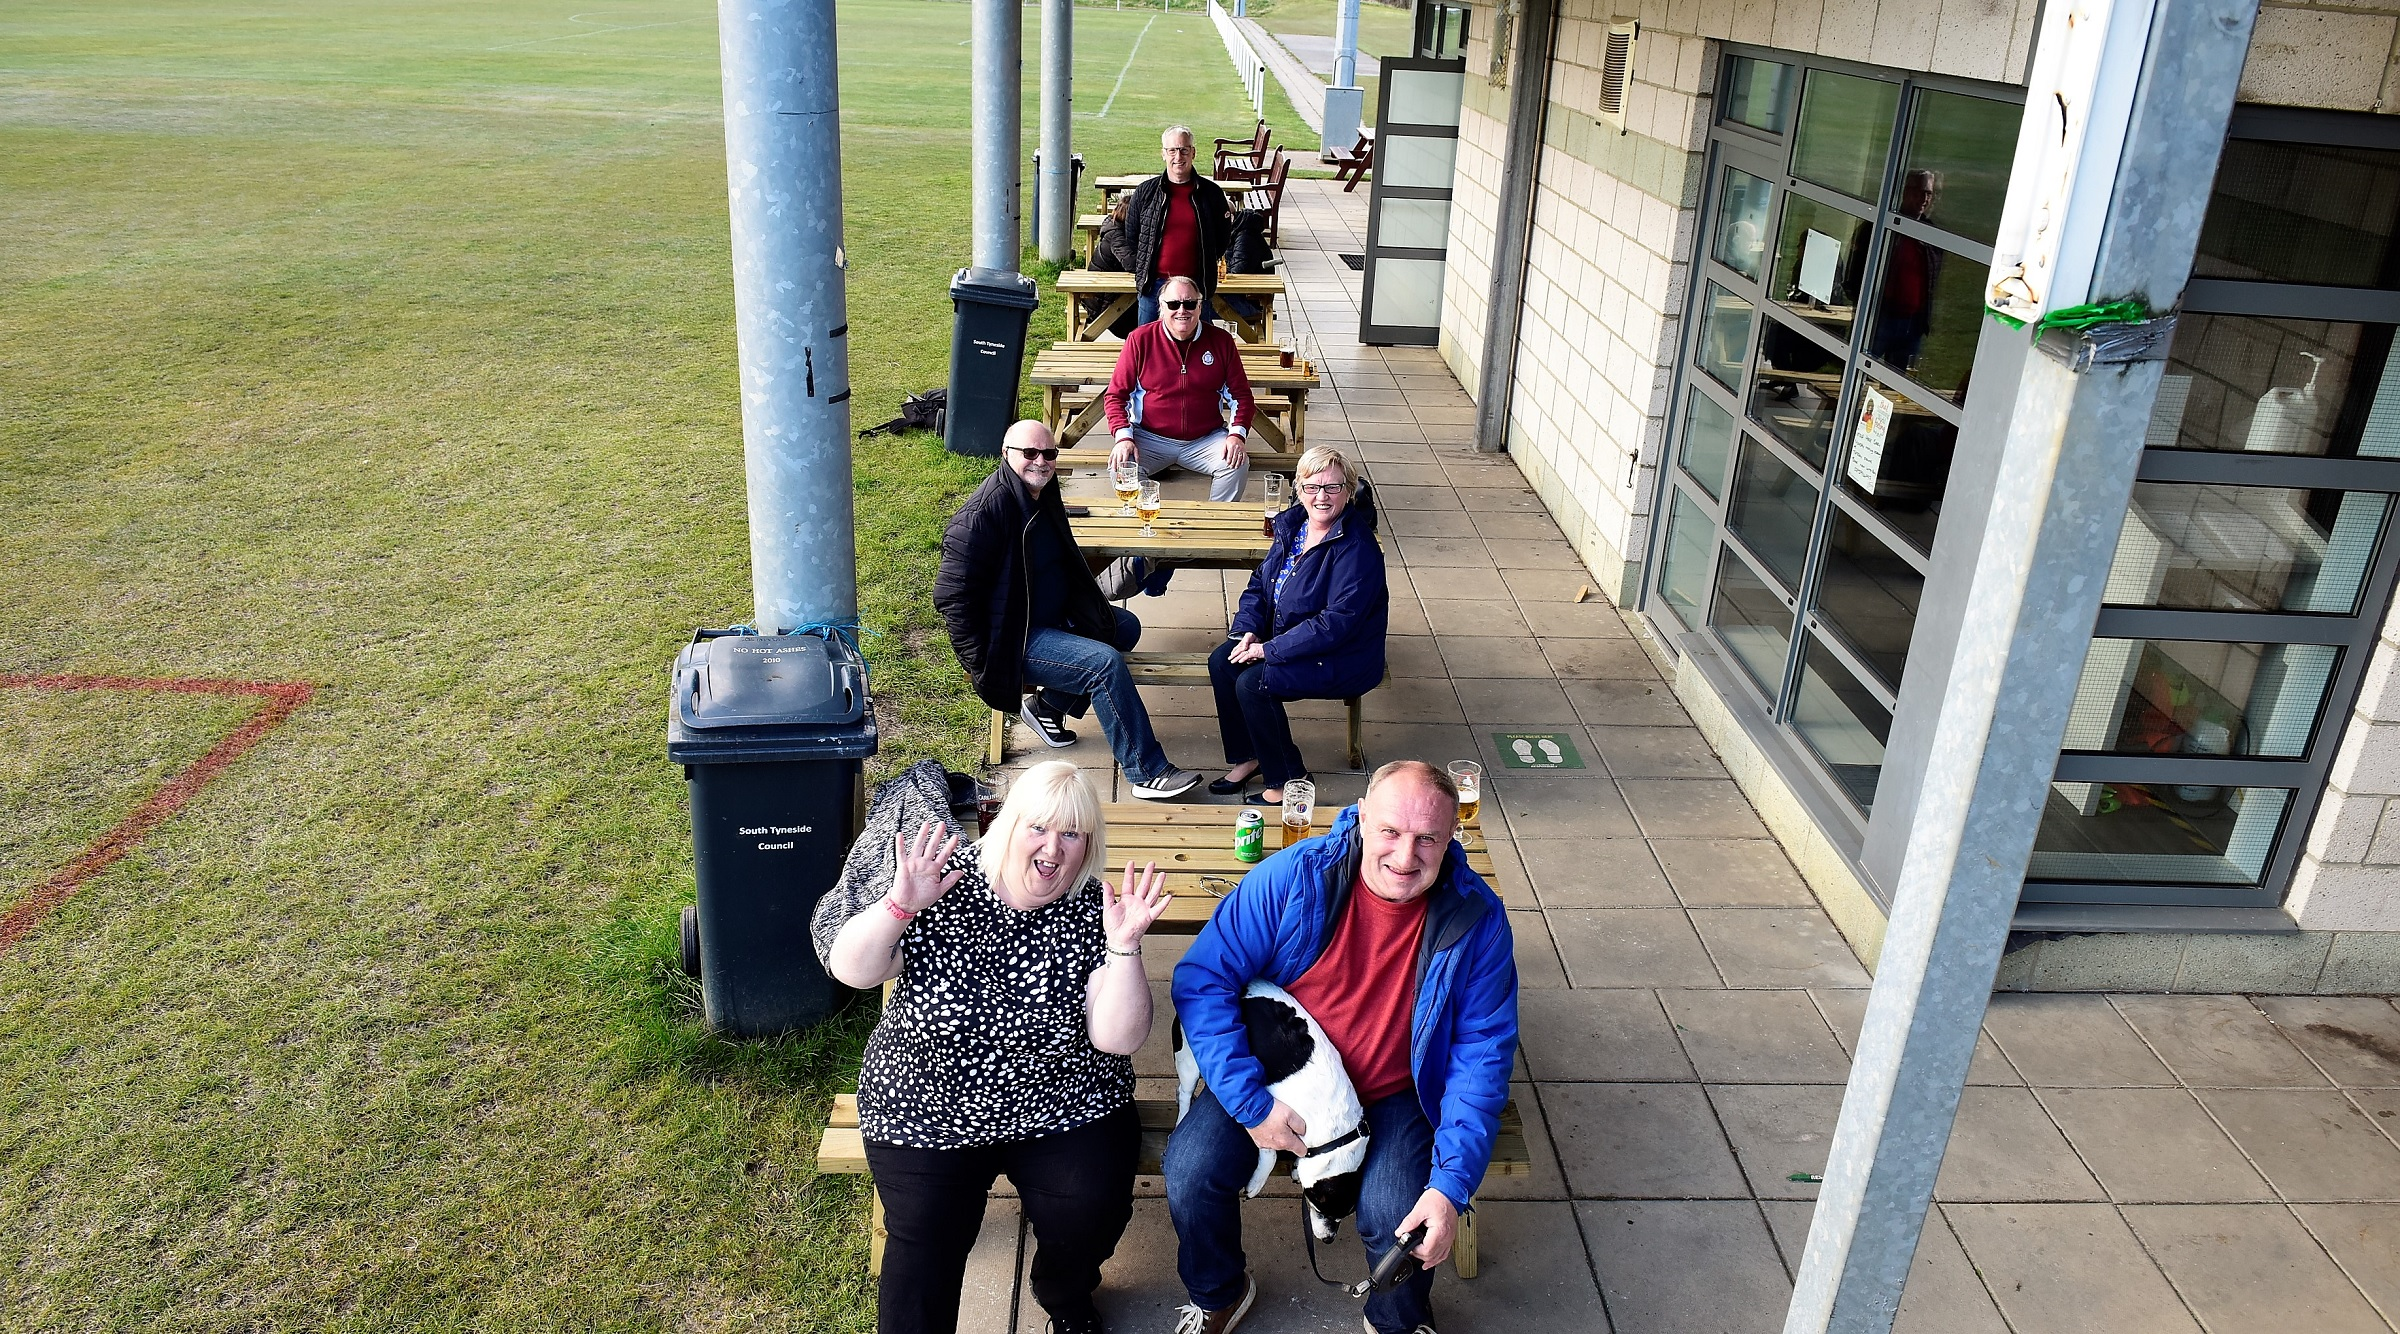 On the bench: Fans pitch in to help open Welfare drinking area